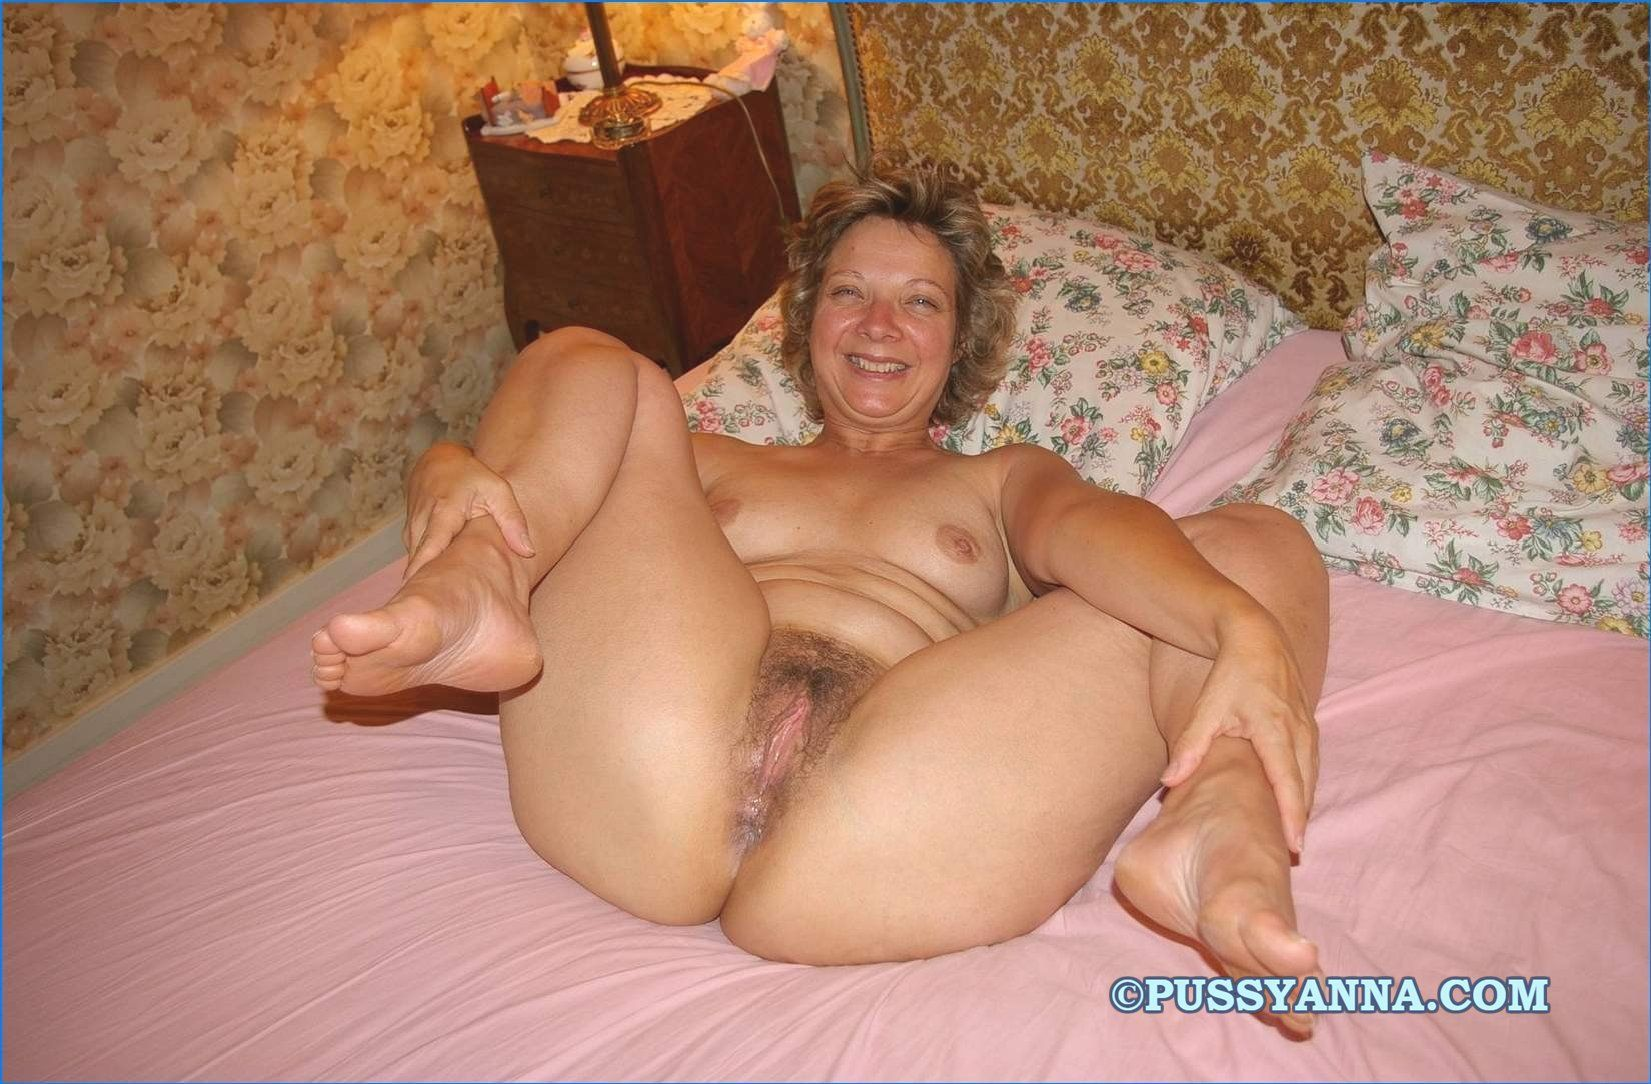 Hot nude plump pussy